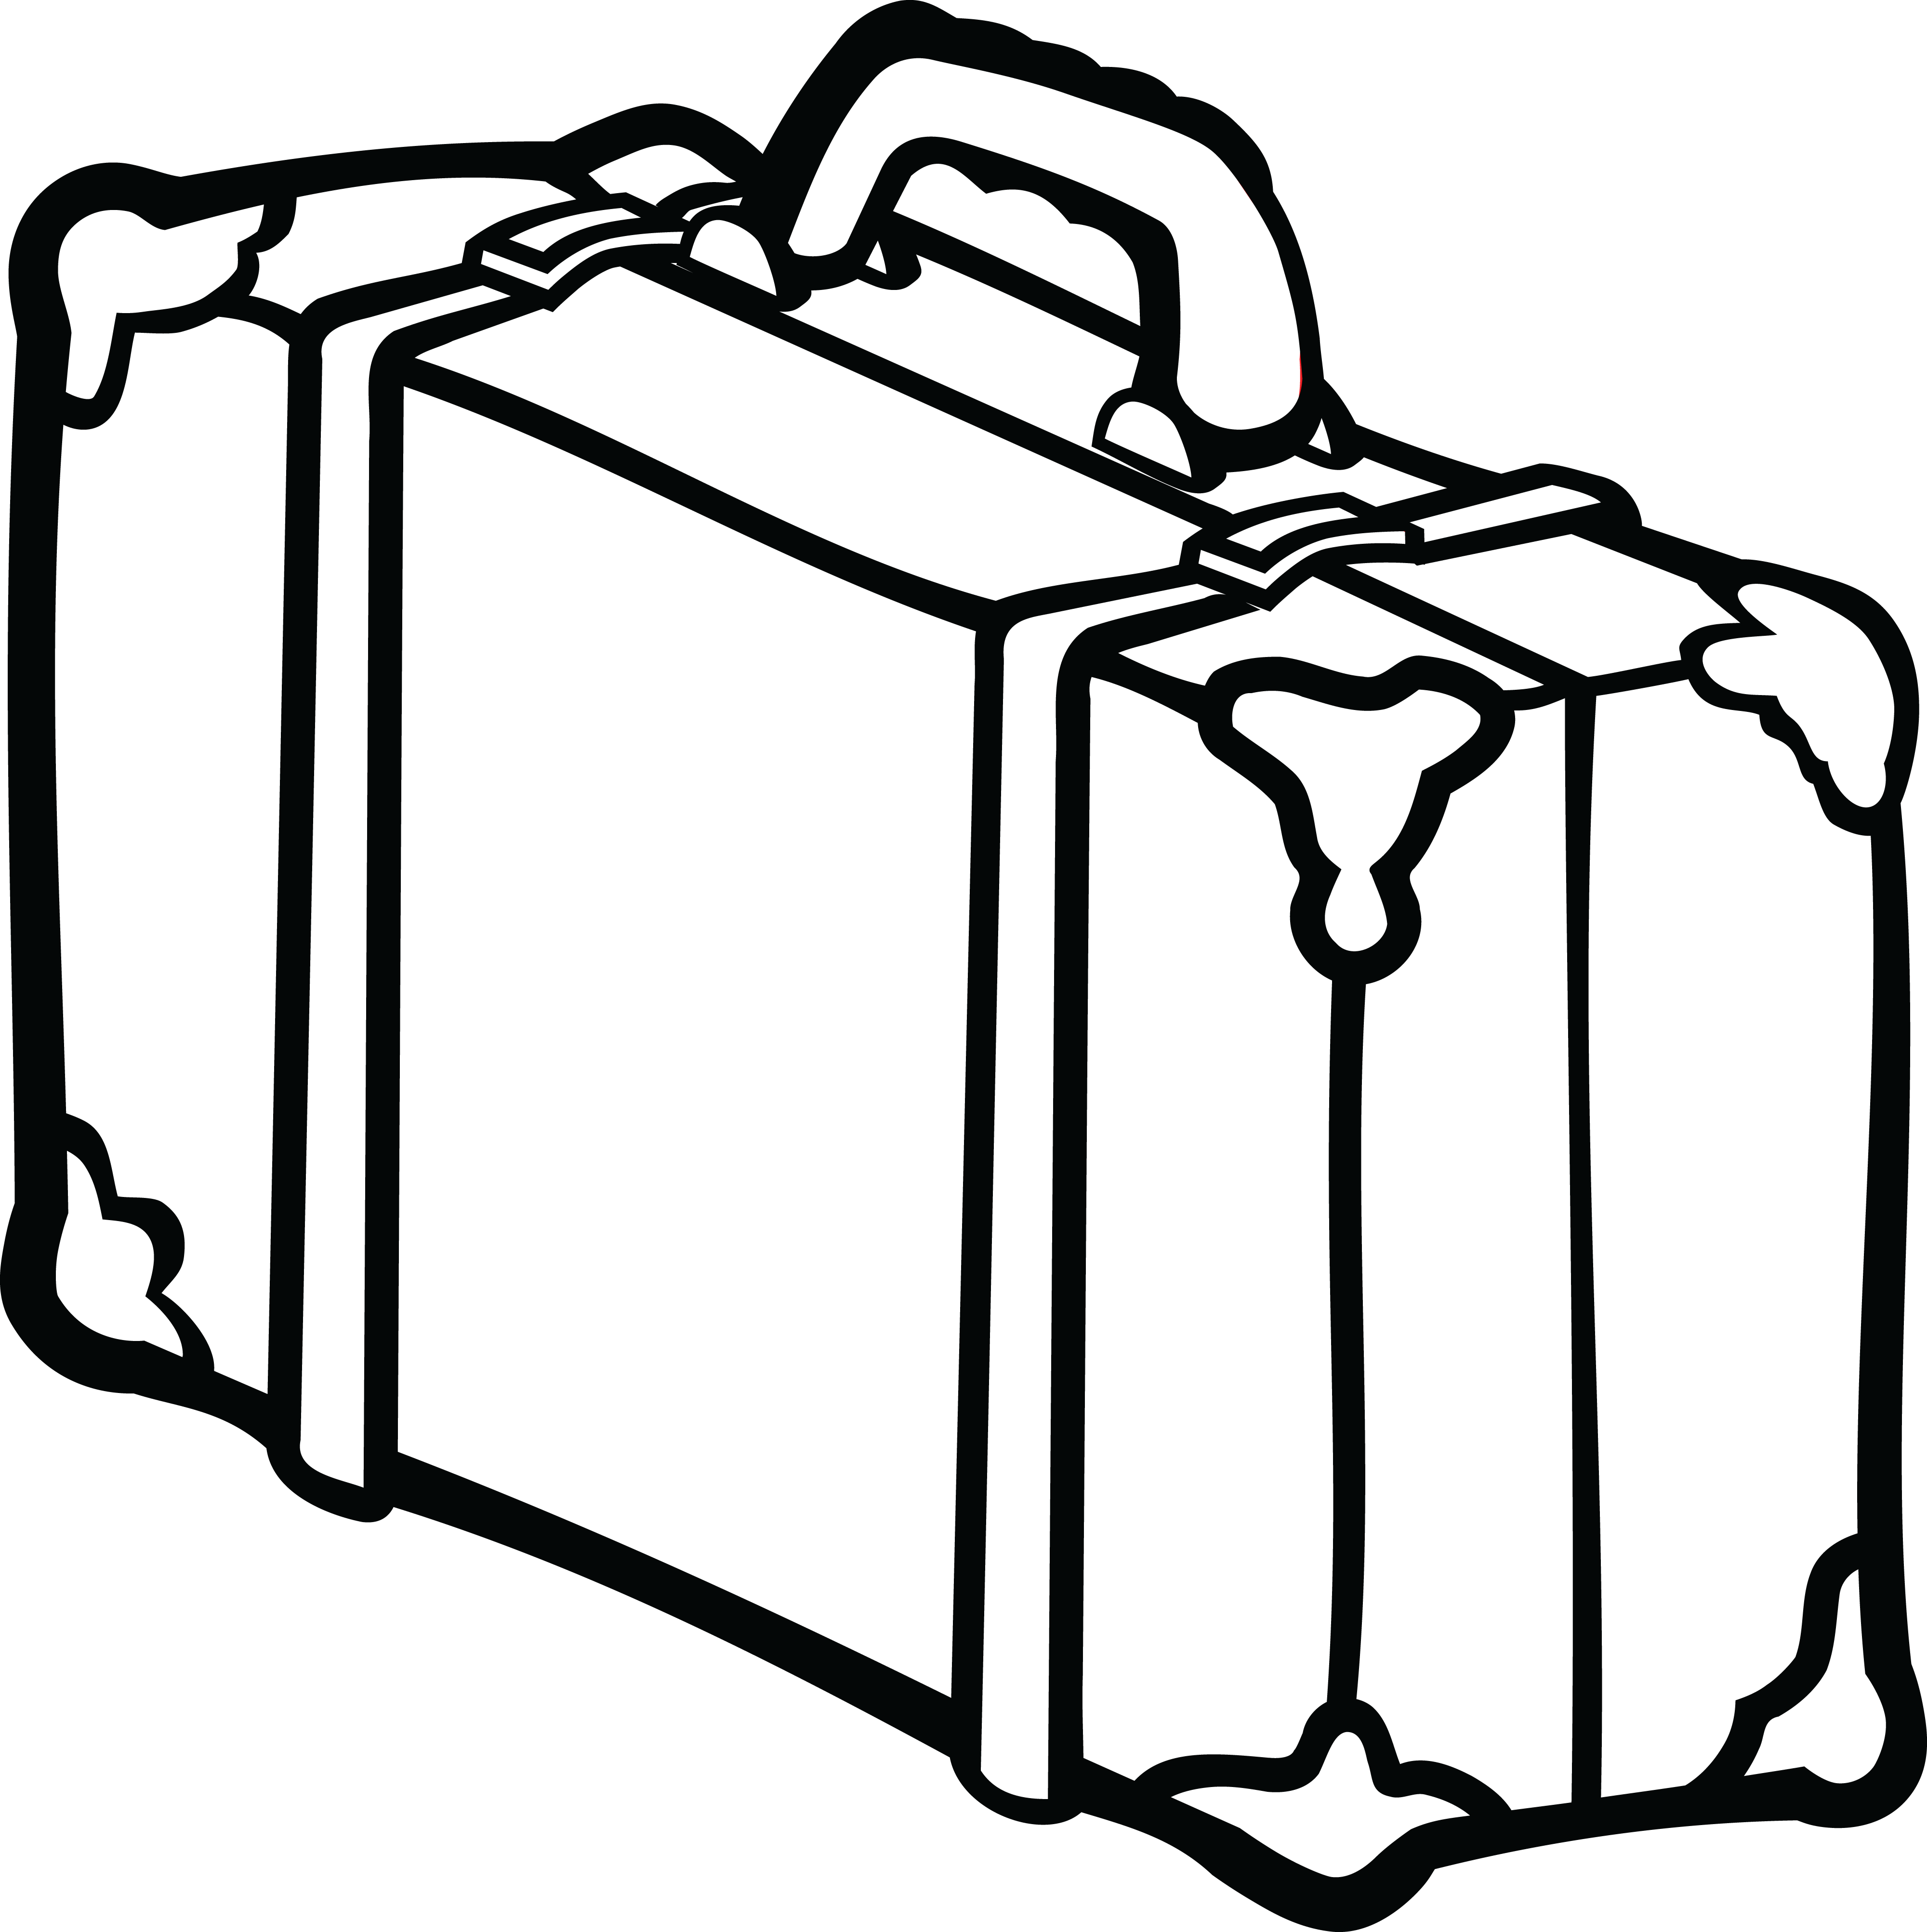 Suitcase clipart black and white 3 » Clipart Station.